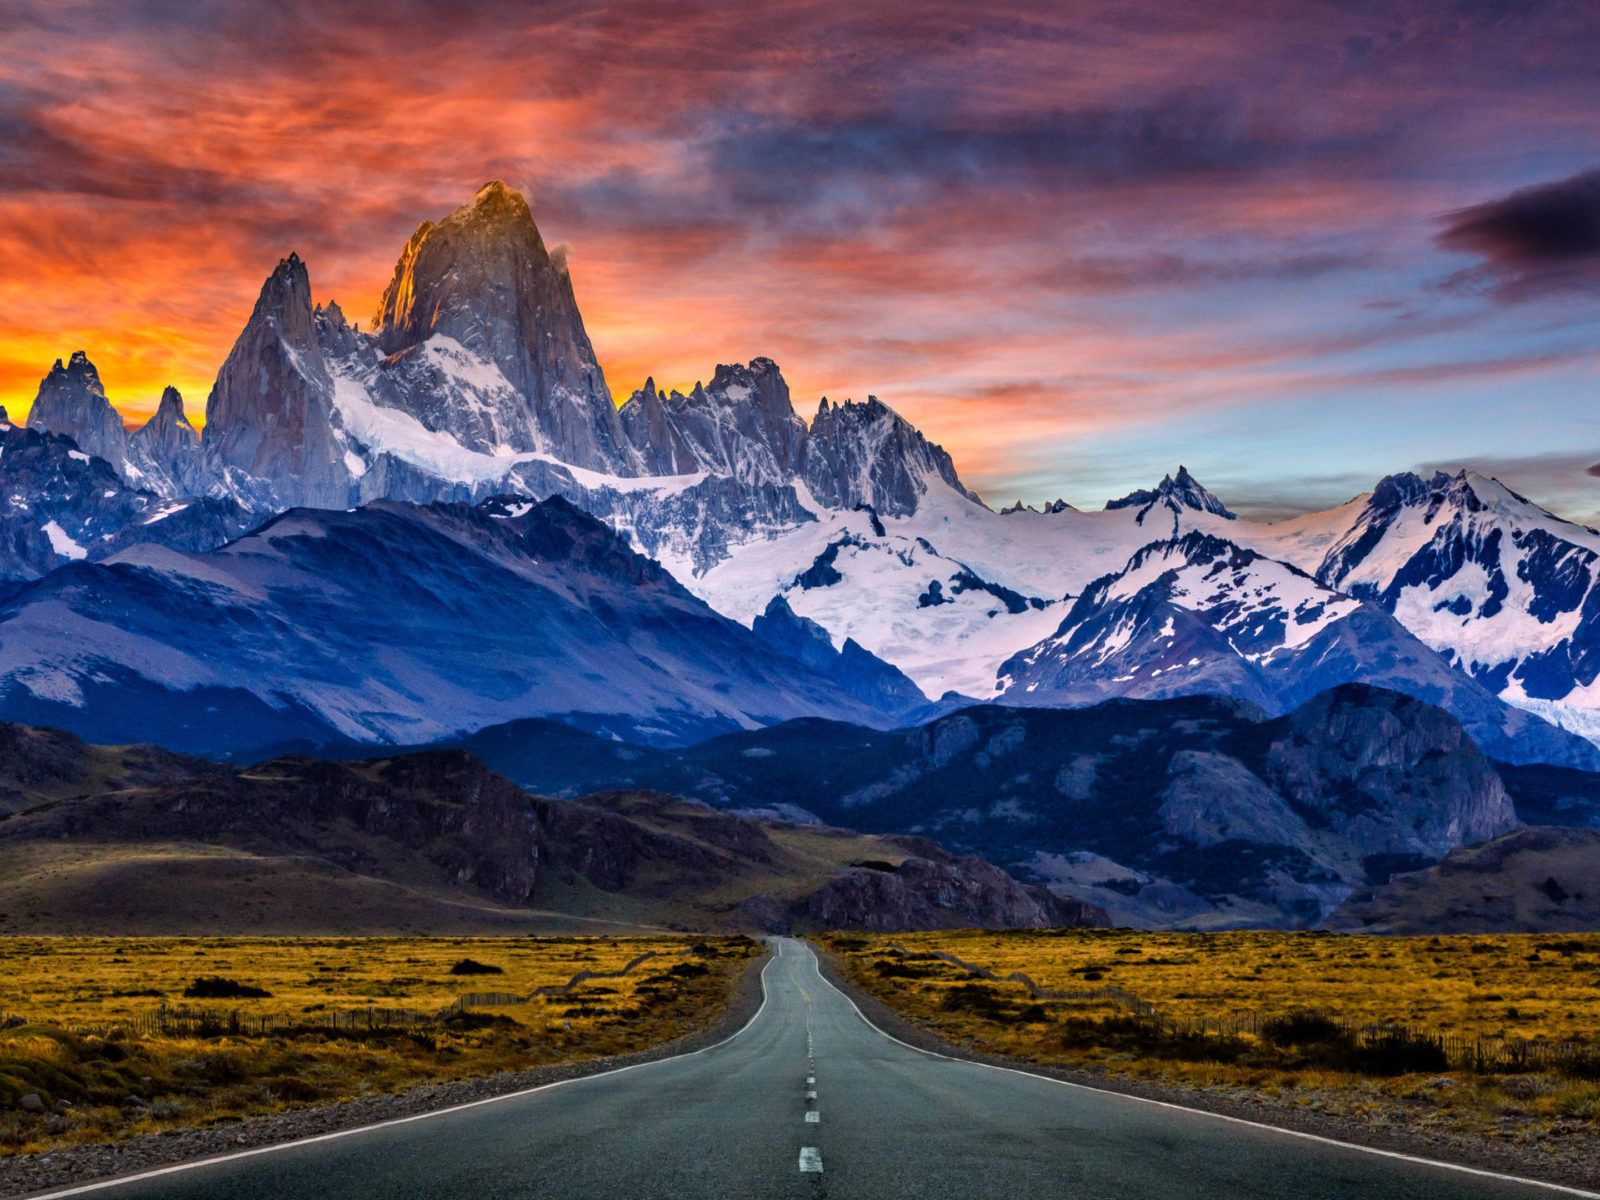 Mountain Wallpaper Hd Iphone Fitz Roy Mountain In South America Patagonia Between